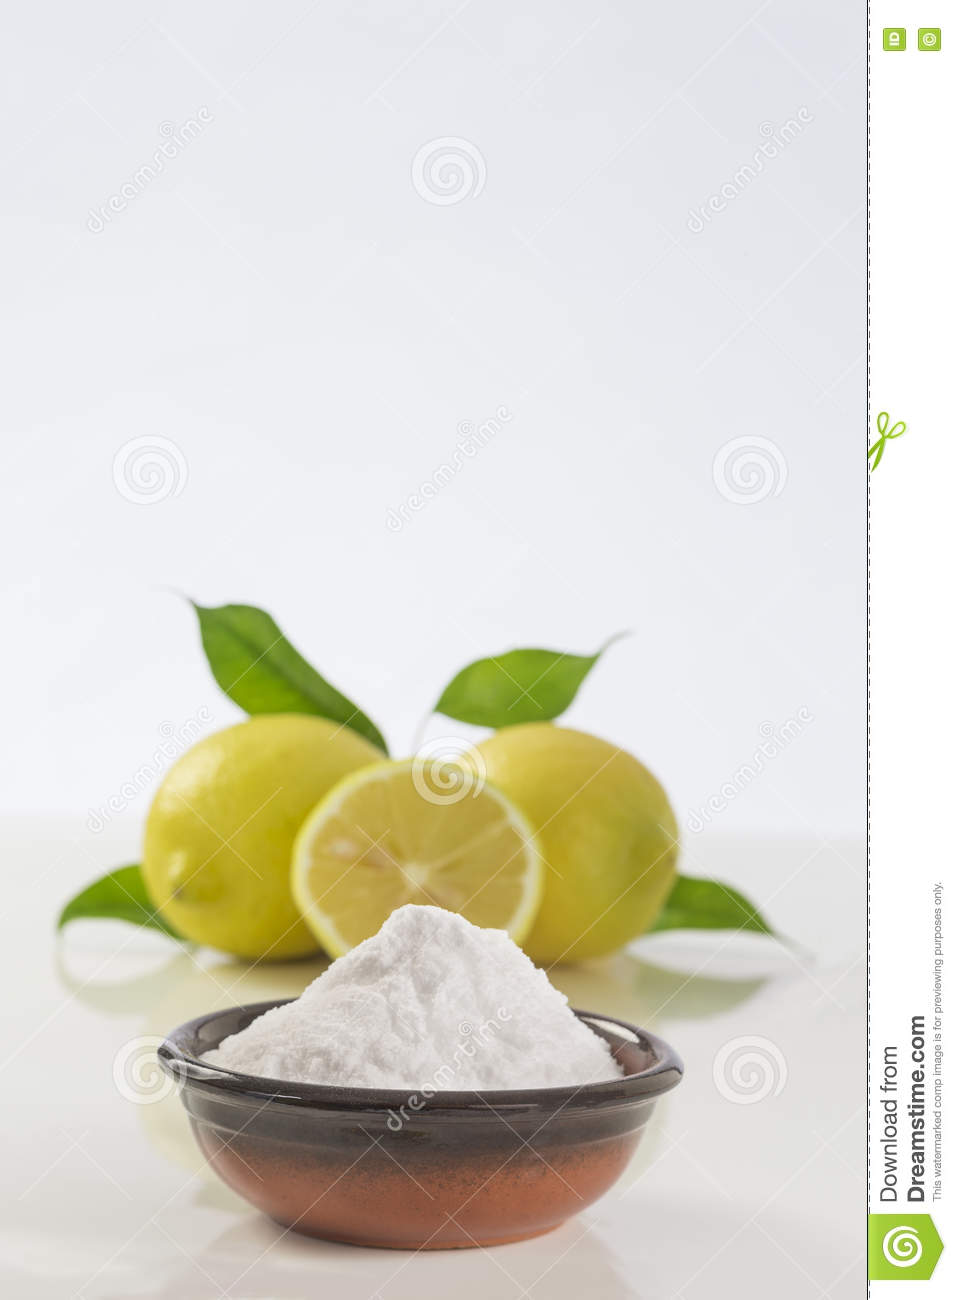 Baking Soda Sodium Bicarbonate Medicinal And Household Uses Stock